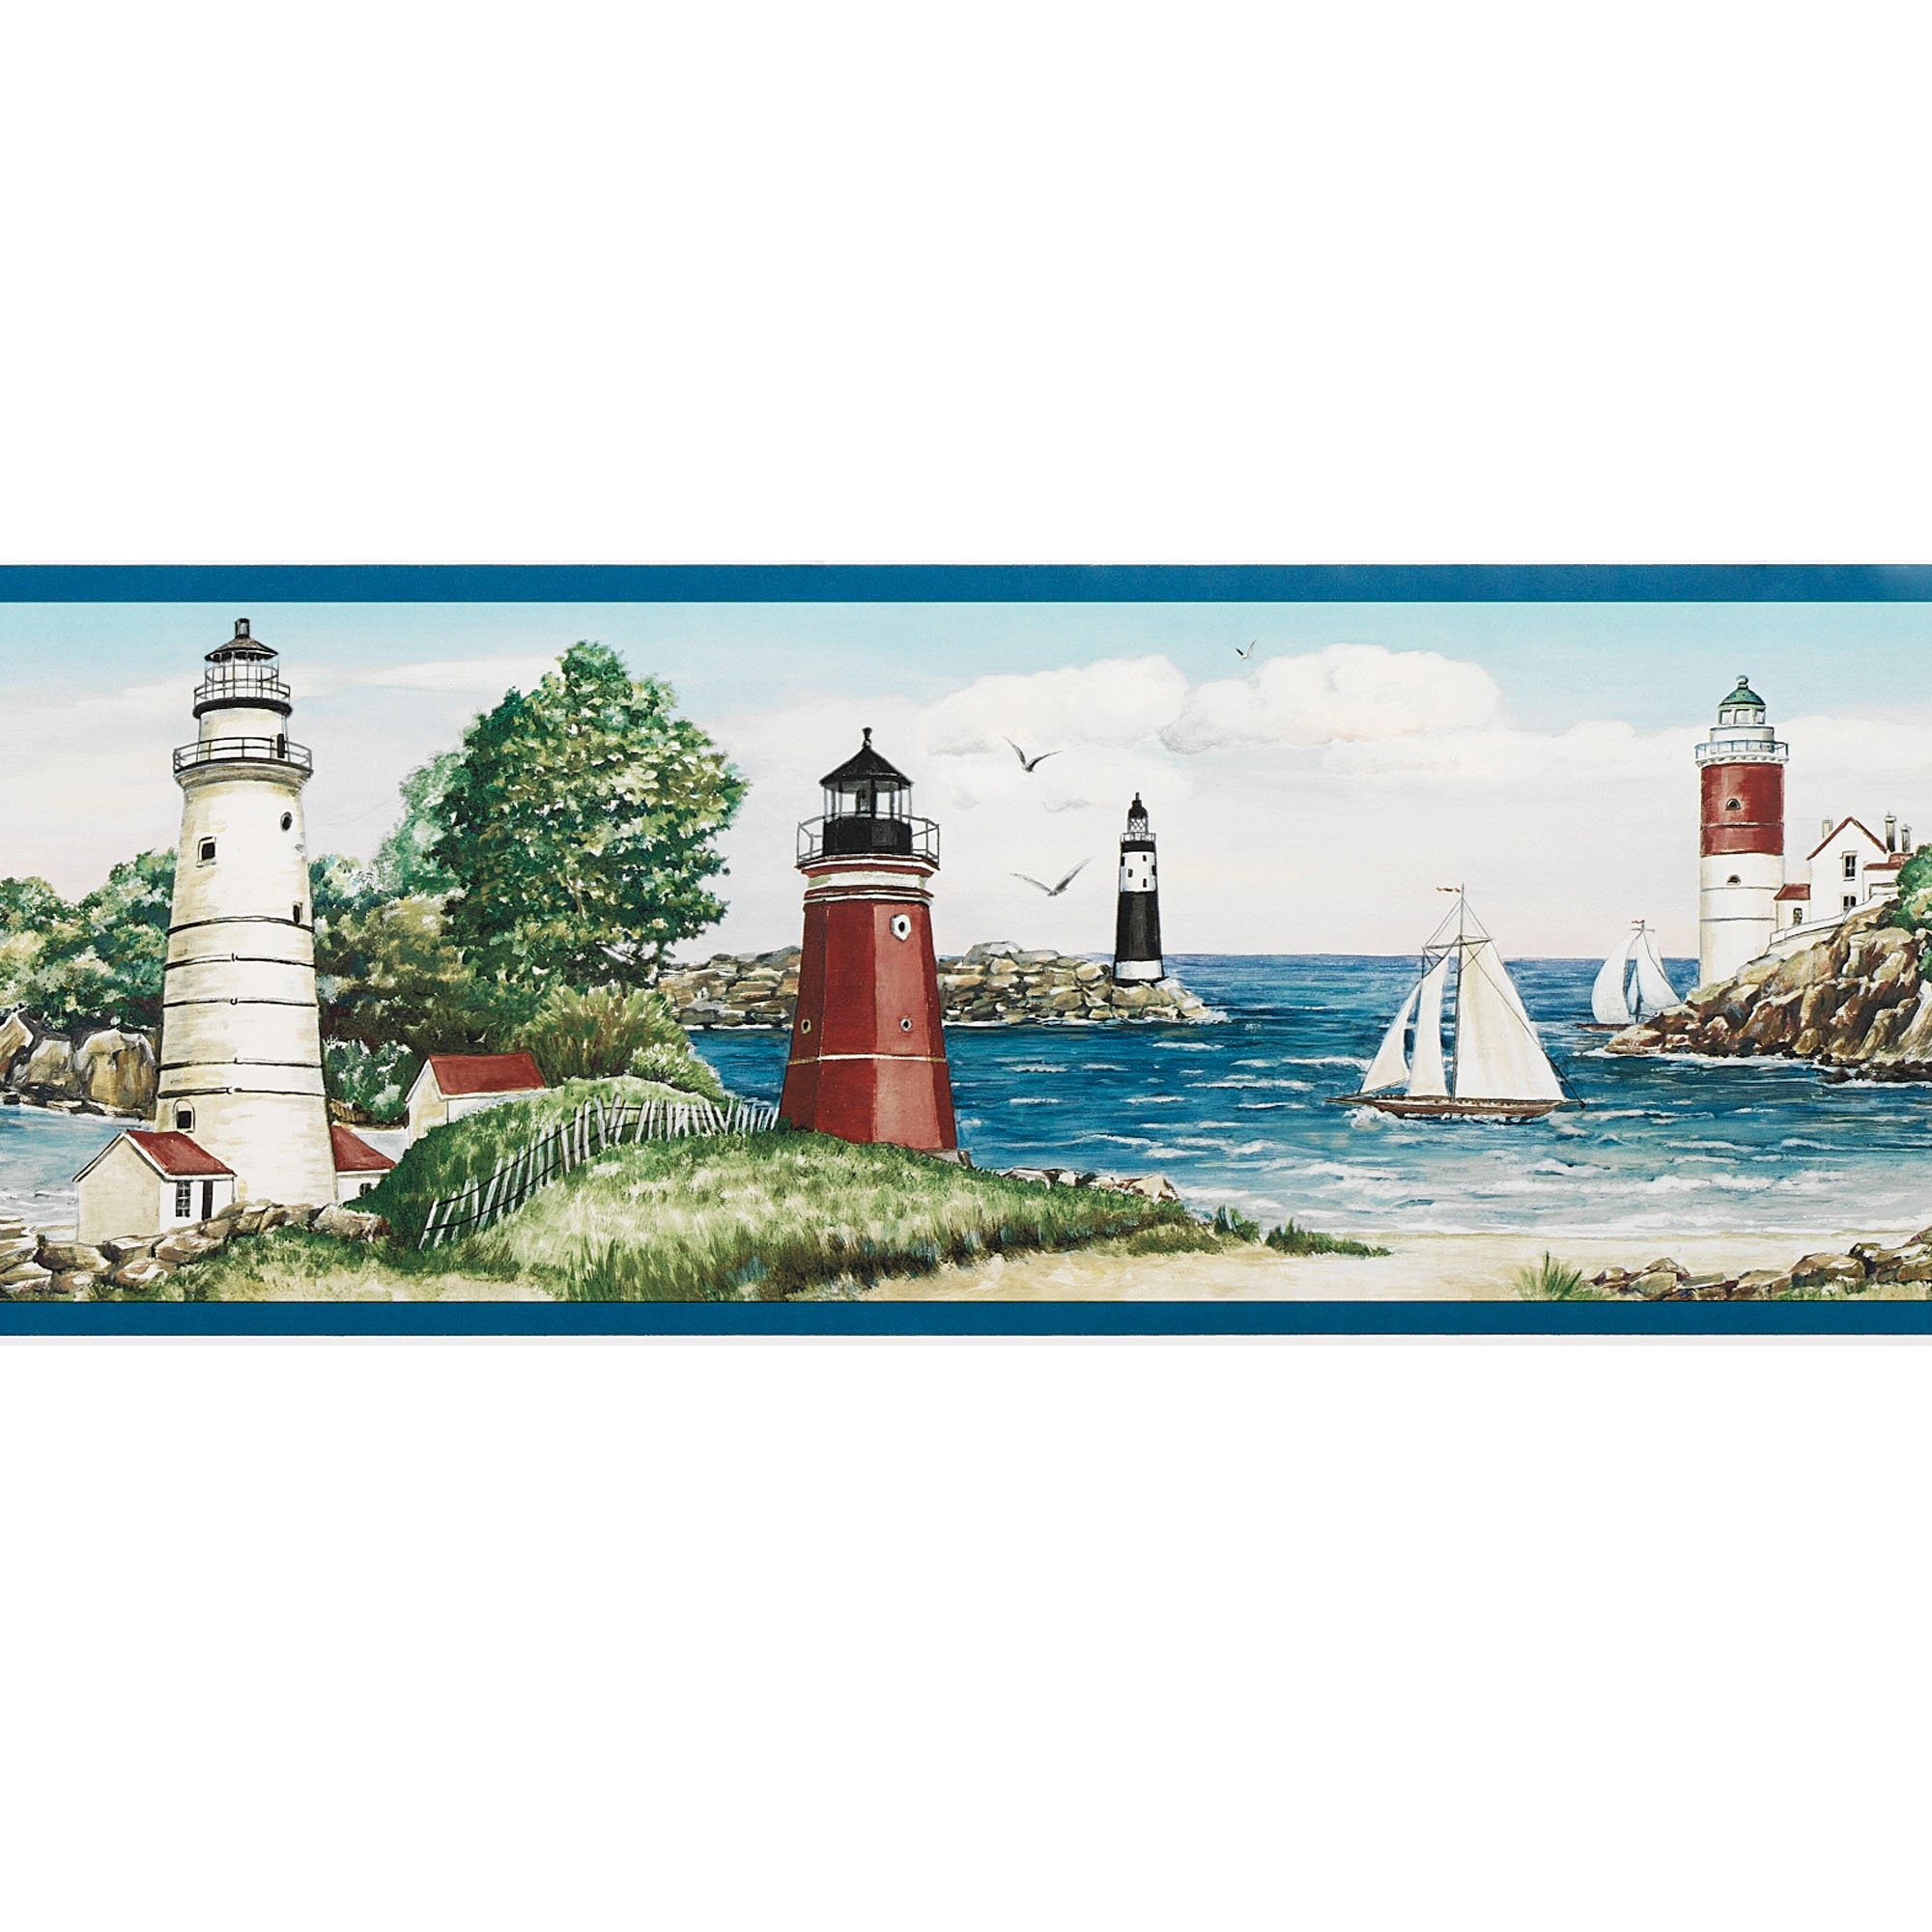 Home Lighthouse Sailboat Wallpaper Border Multi Warm 2000x2000